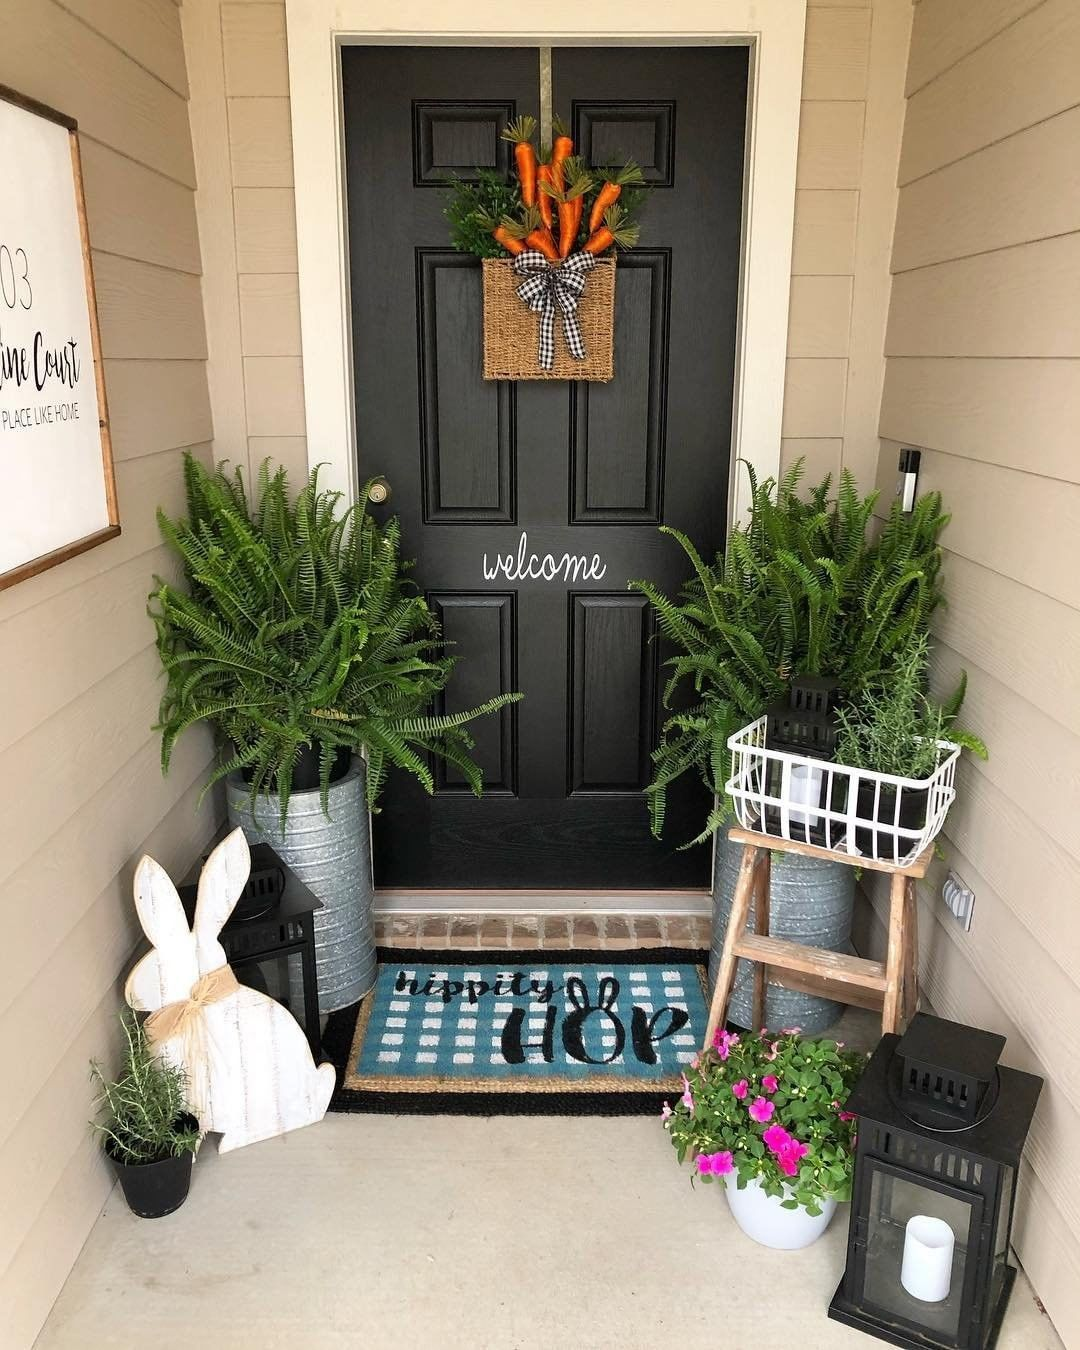 Better Homes Gardens On Instagram Faithfootballandfairytales Front Door Is All Dressed Up For Small Porch Decorating Spring Porch Decor Porch Decorating